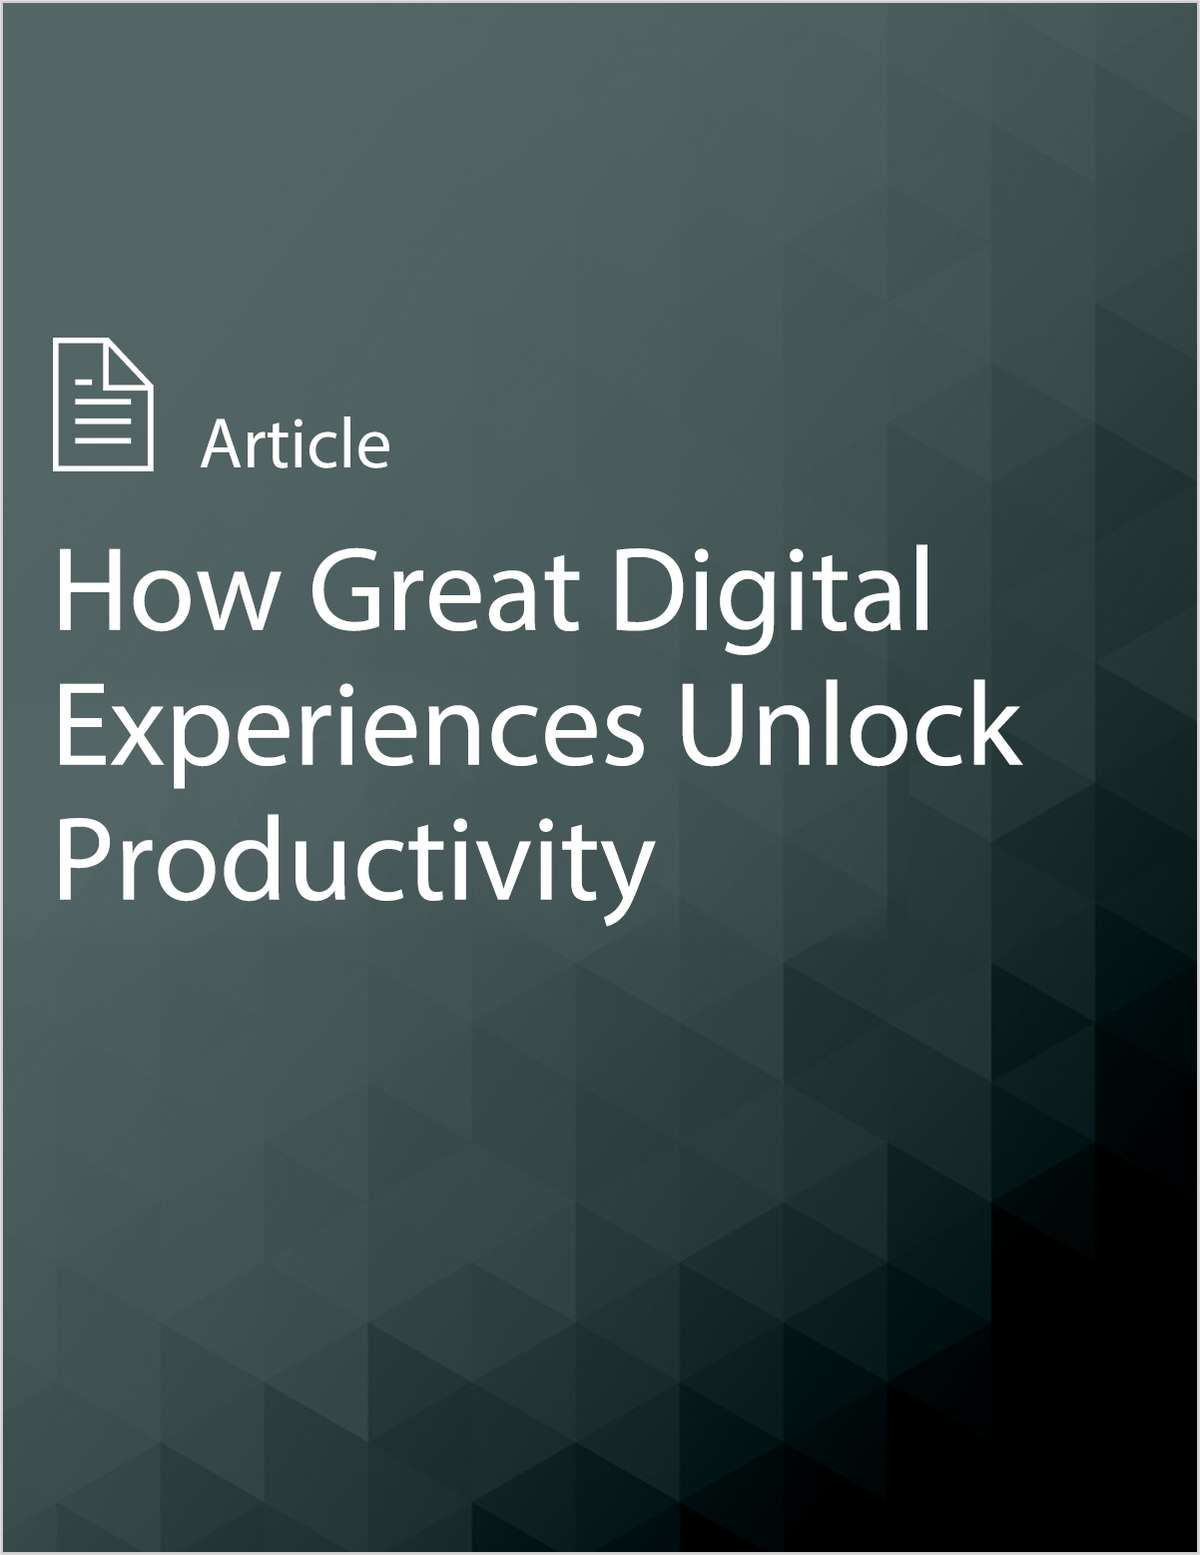 How Great Digital Experiences Unlock Productivity